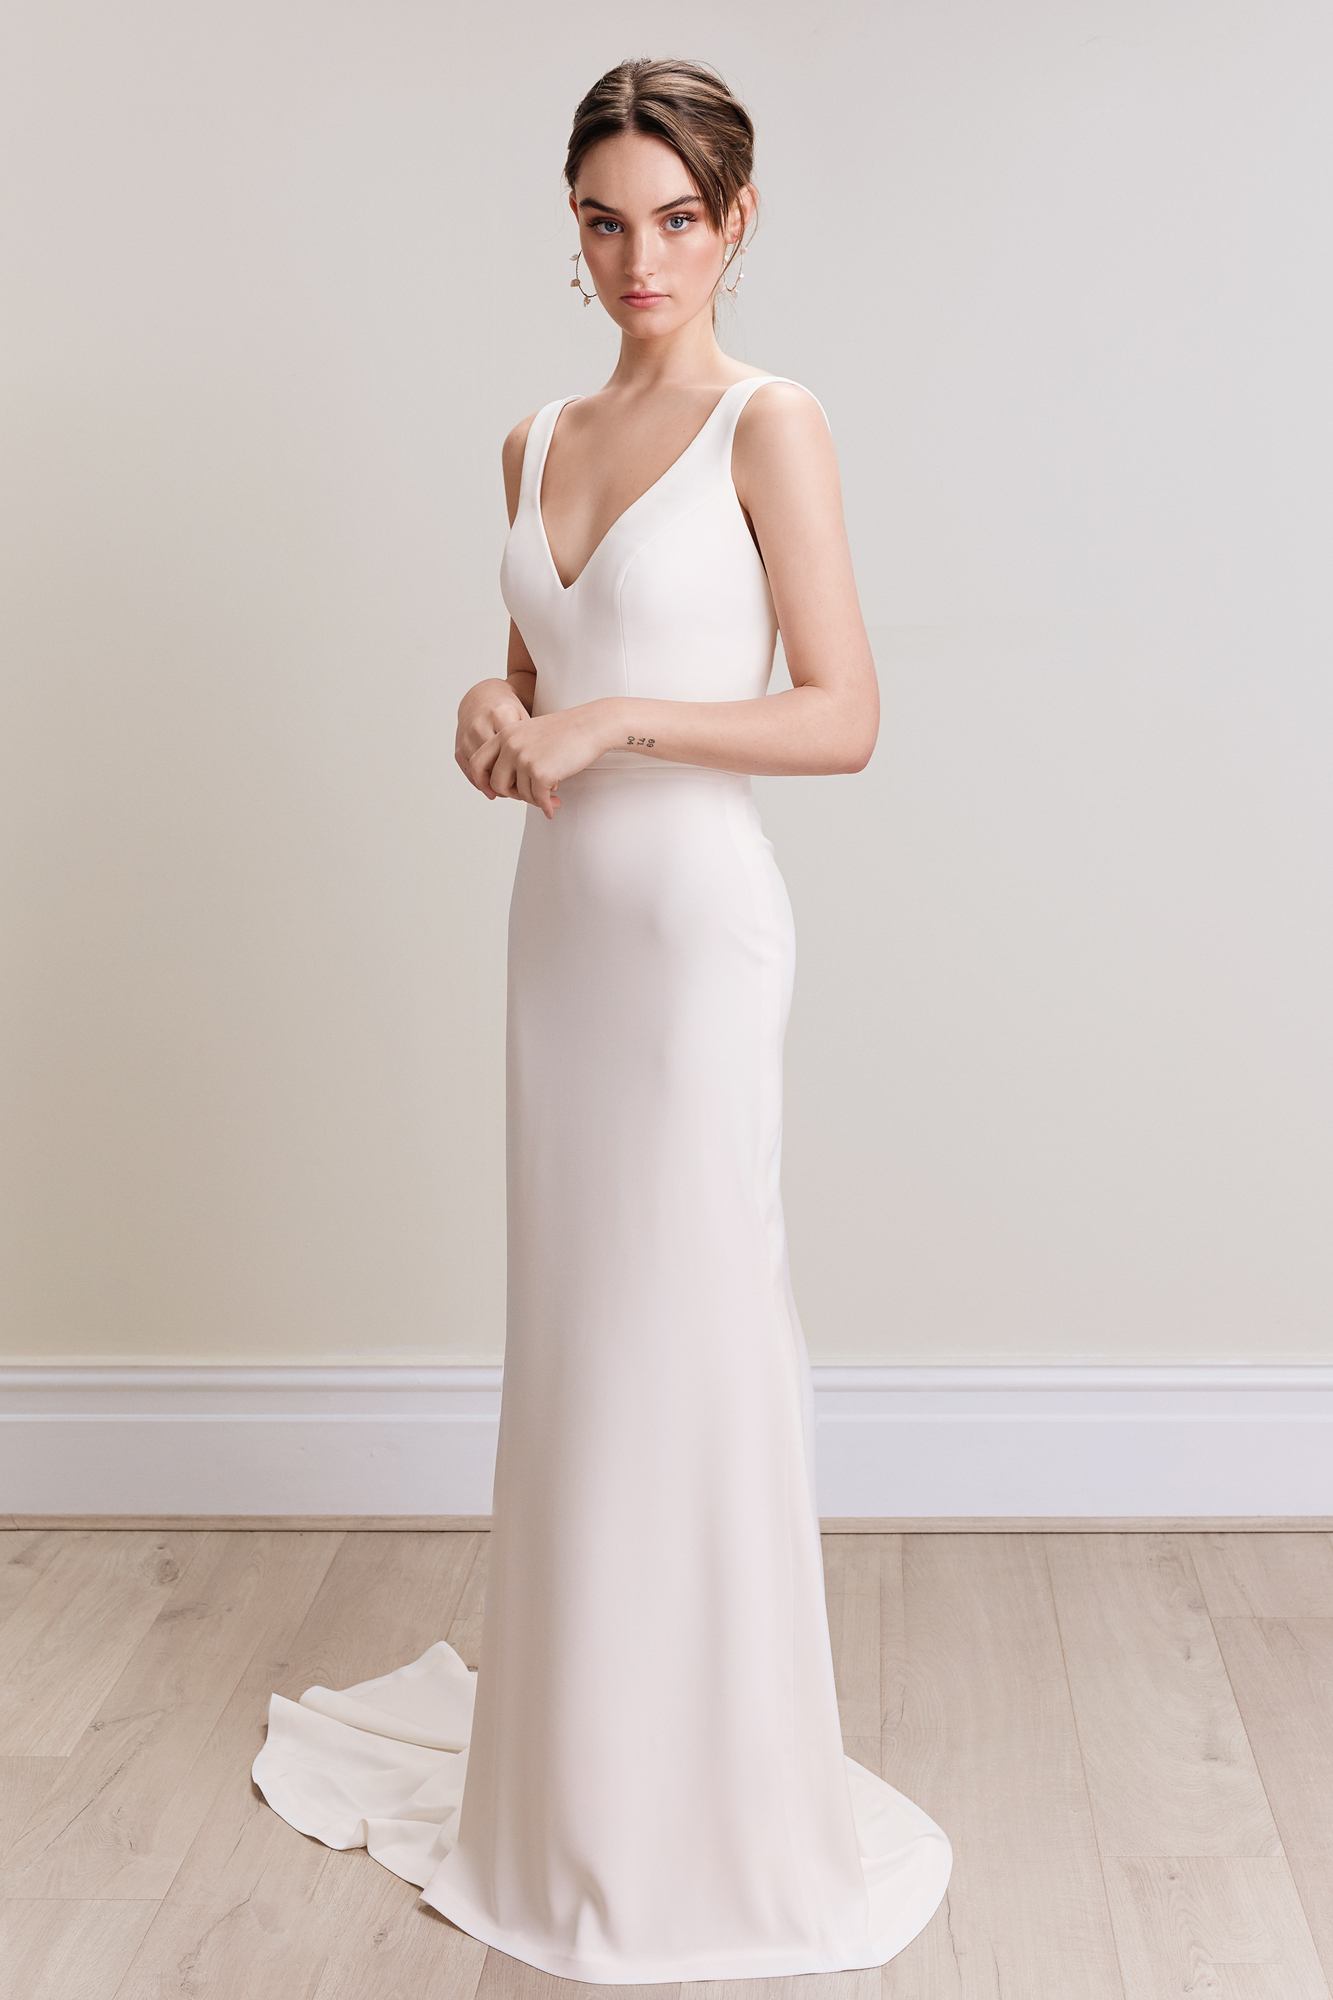 Sarina_Tavra_Bridal_Couture_2020_Collection_Maisie_Gown_01